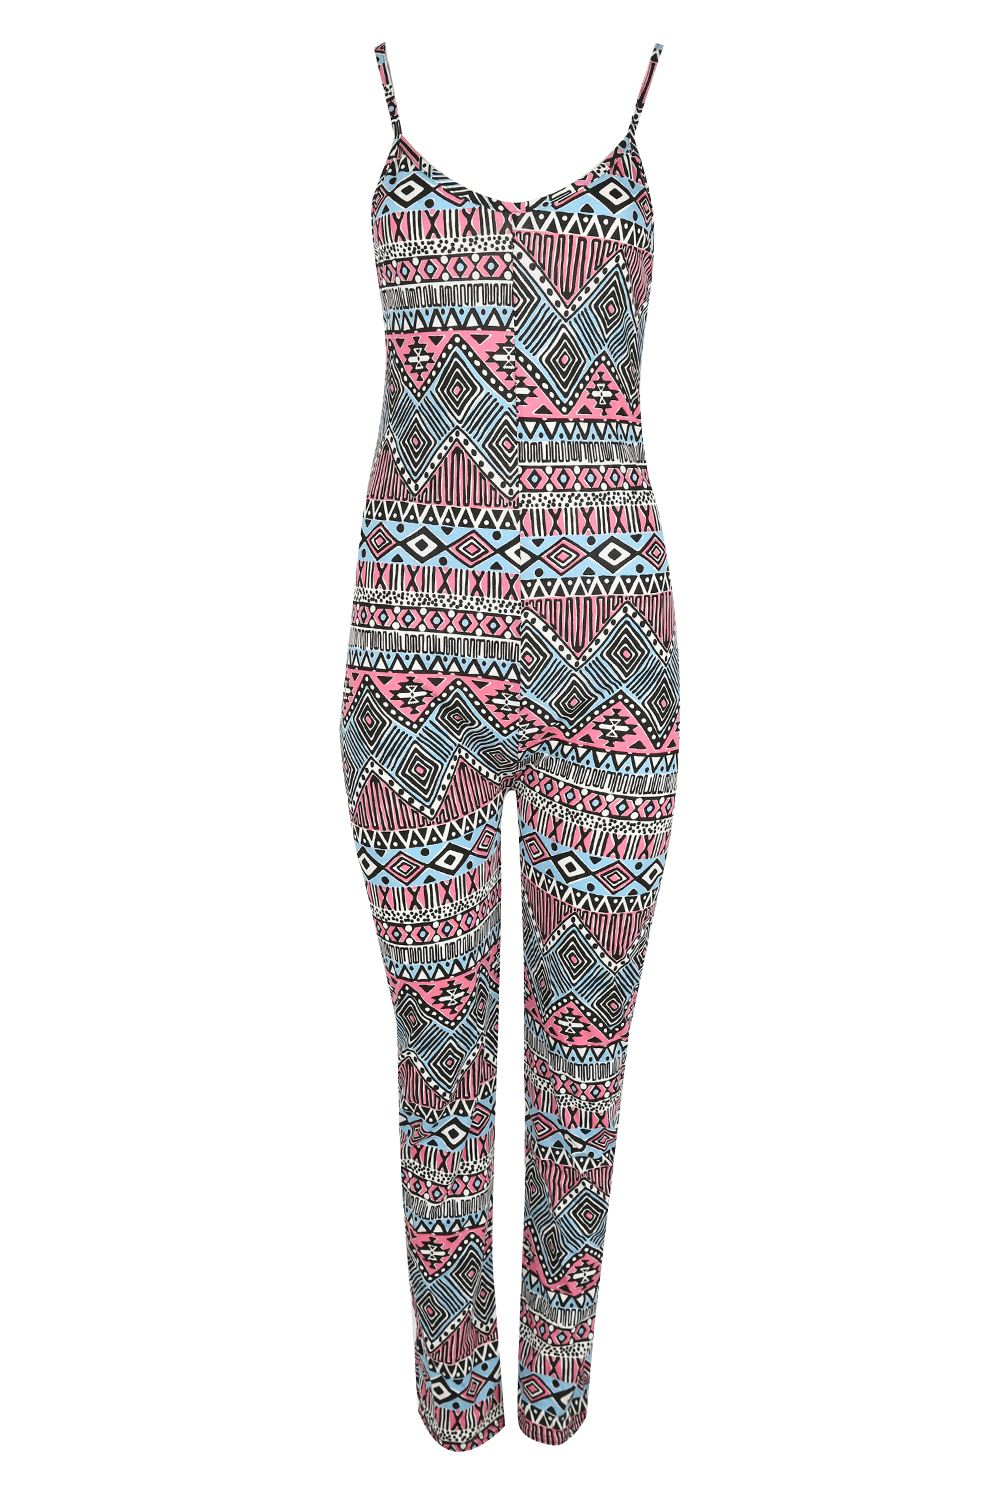 Women's jumpsuits provide effortless style for both casual and formal occasions. Grab a button-front jumpsuit for a day in the office or a paisley women's romper for an afternoon at the beach. These all-in-one pieces are a versatile addition to any wardrobe, as well as a .